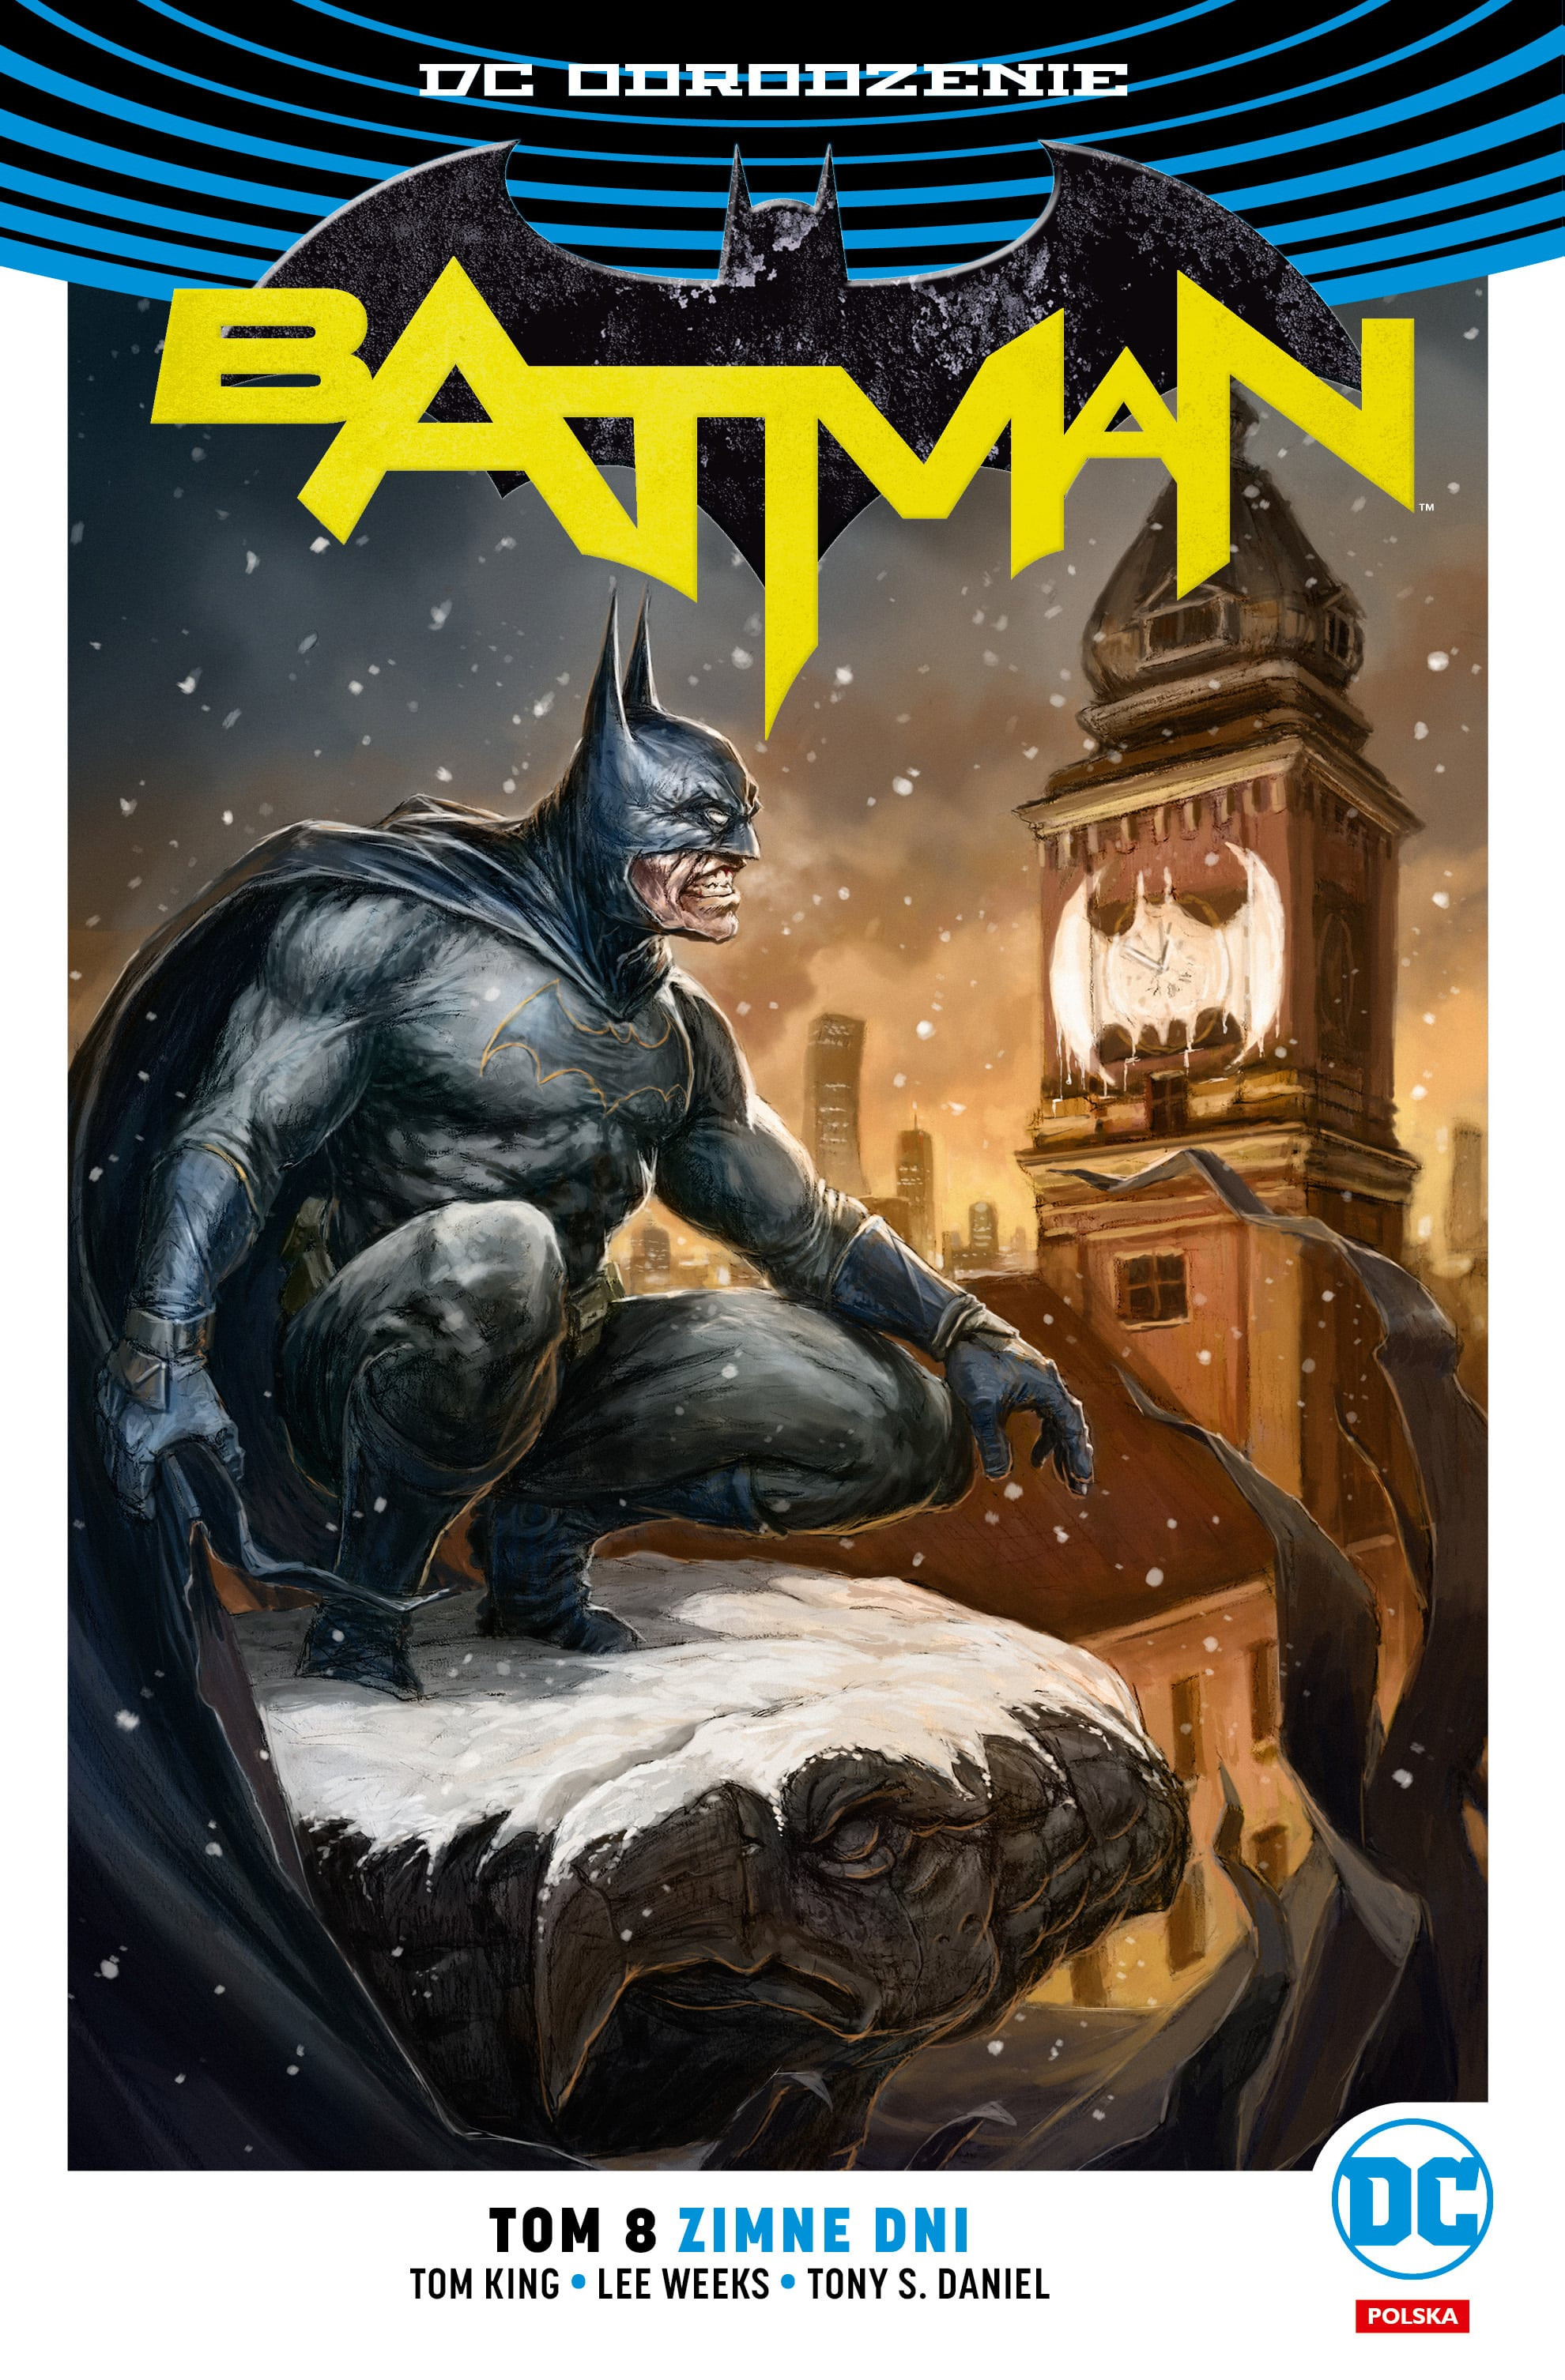 cover_rebirth Batman_Vol. 8 PL Batman in Warsaw_Larek-min.jpg